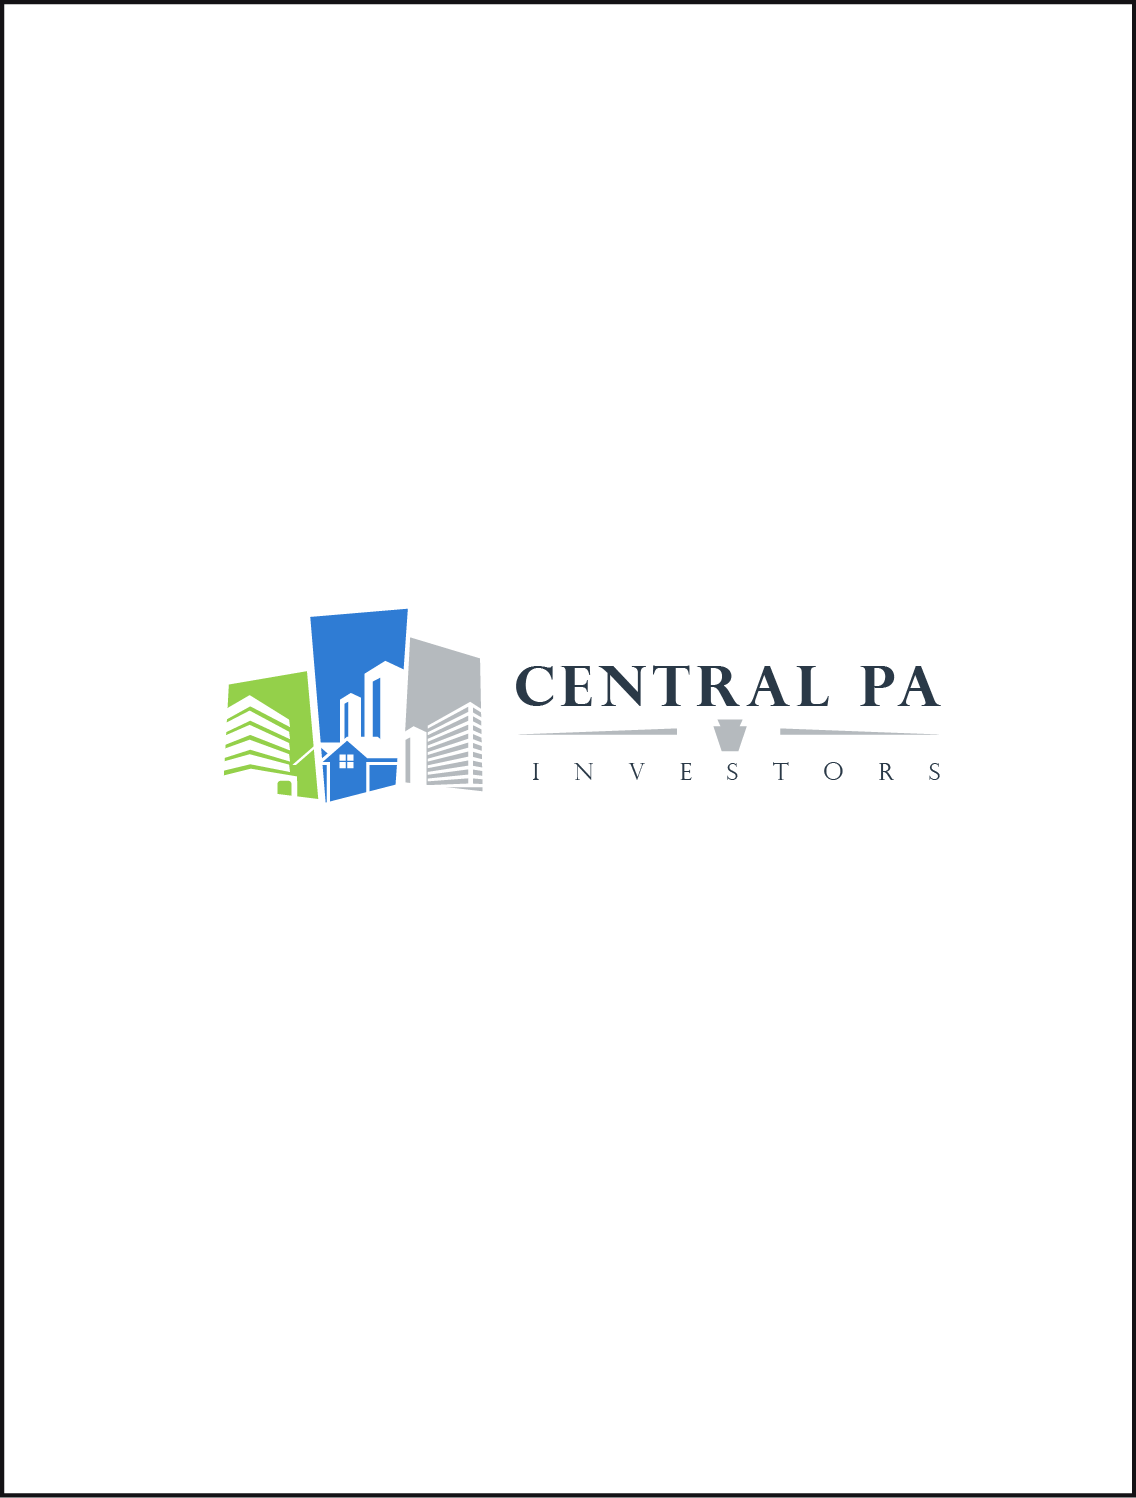 Help us look better than any other Real Estate Club in PA!